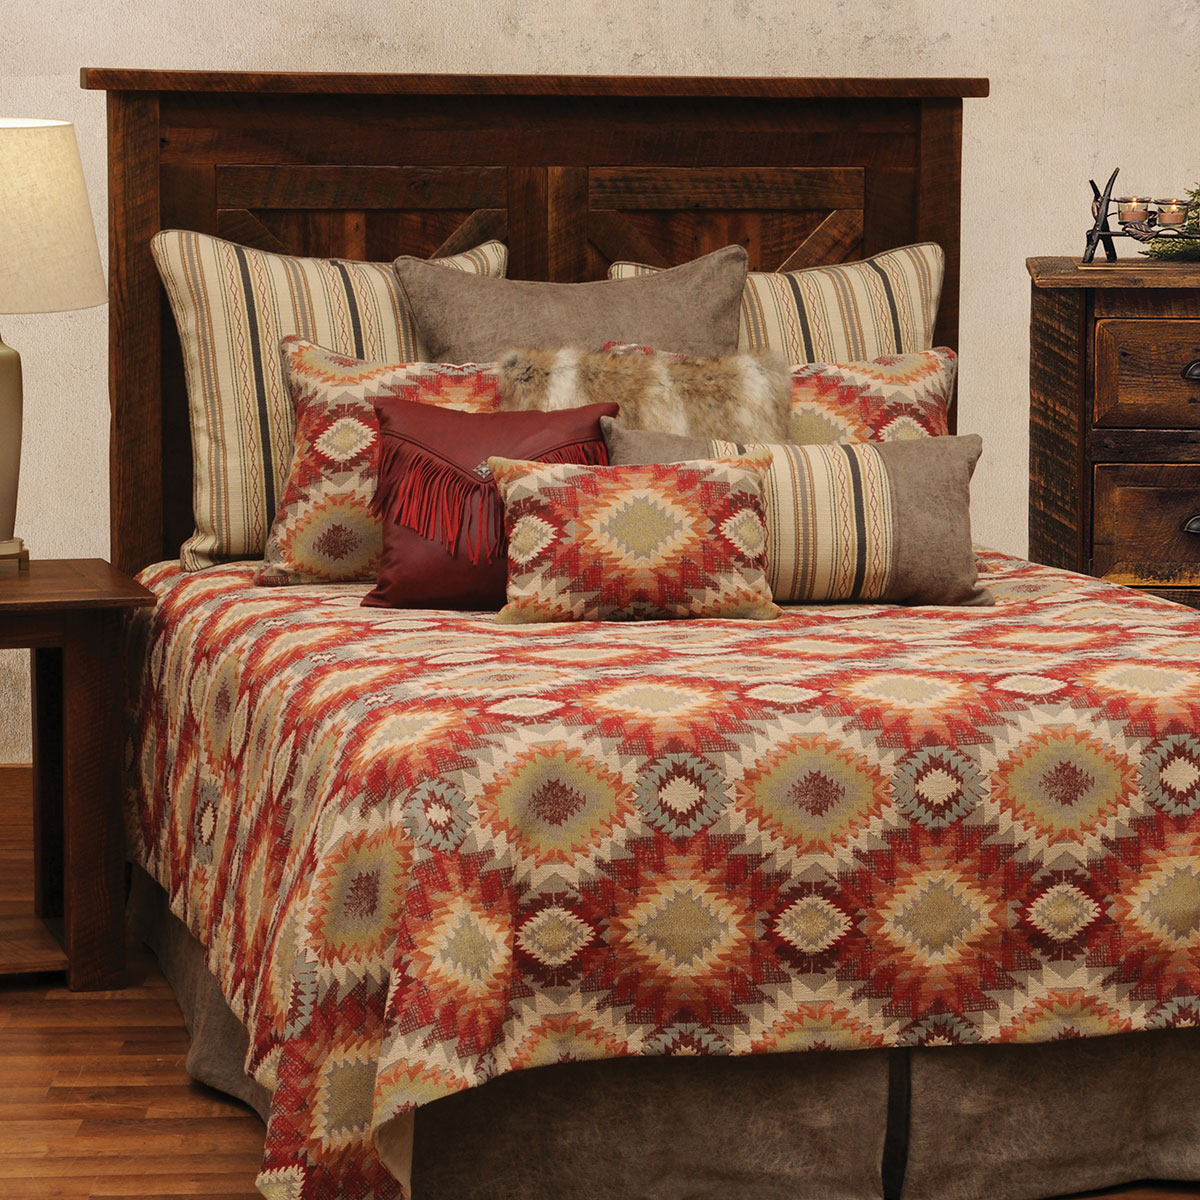 Yuma Sol Deluxe Bed Set - Cal. King